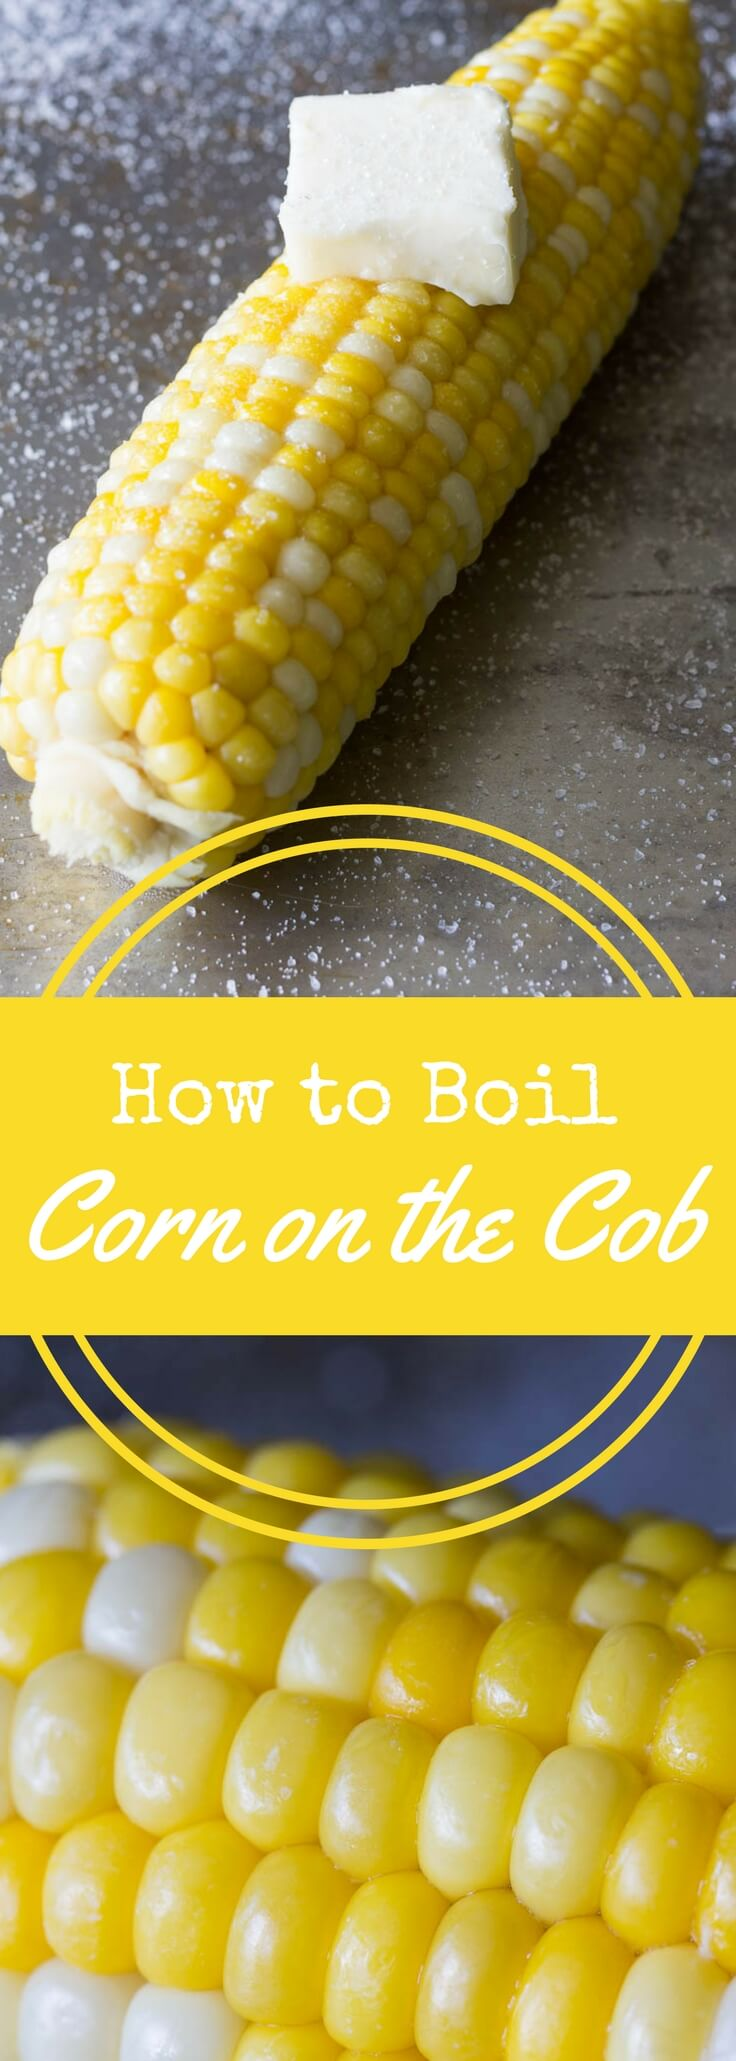 Get the exact cooking time for boiled corn on the cob.  It's foolproof and easy once you learn how to boil corn on the cob!